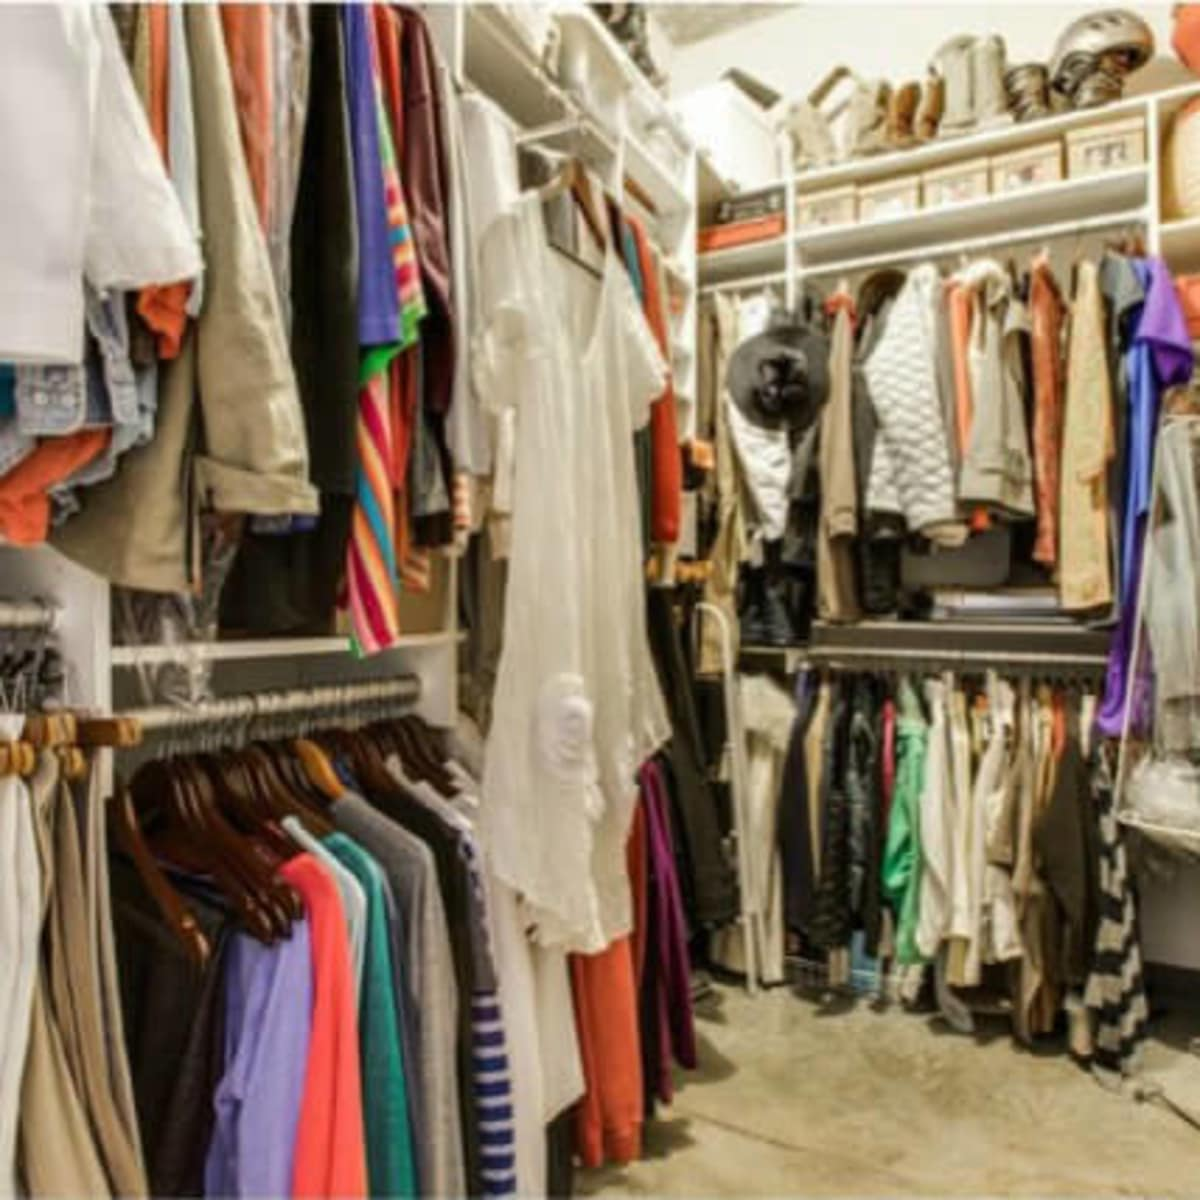 Closet at 1122 Jackson St. in Dallas